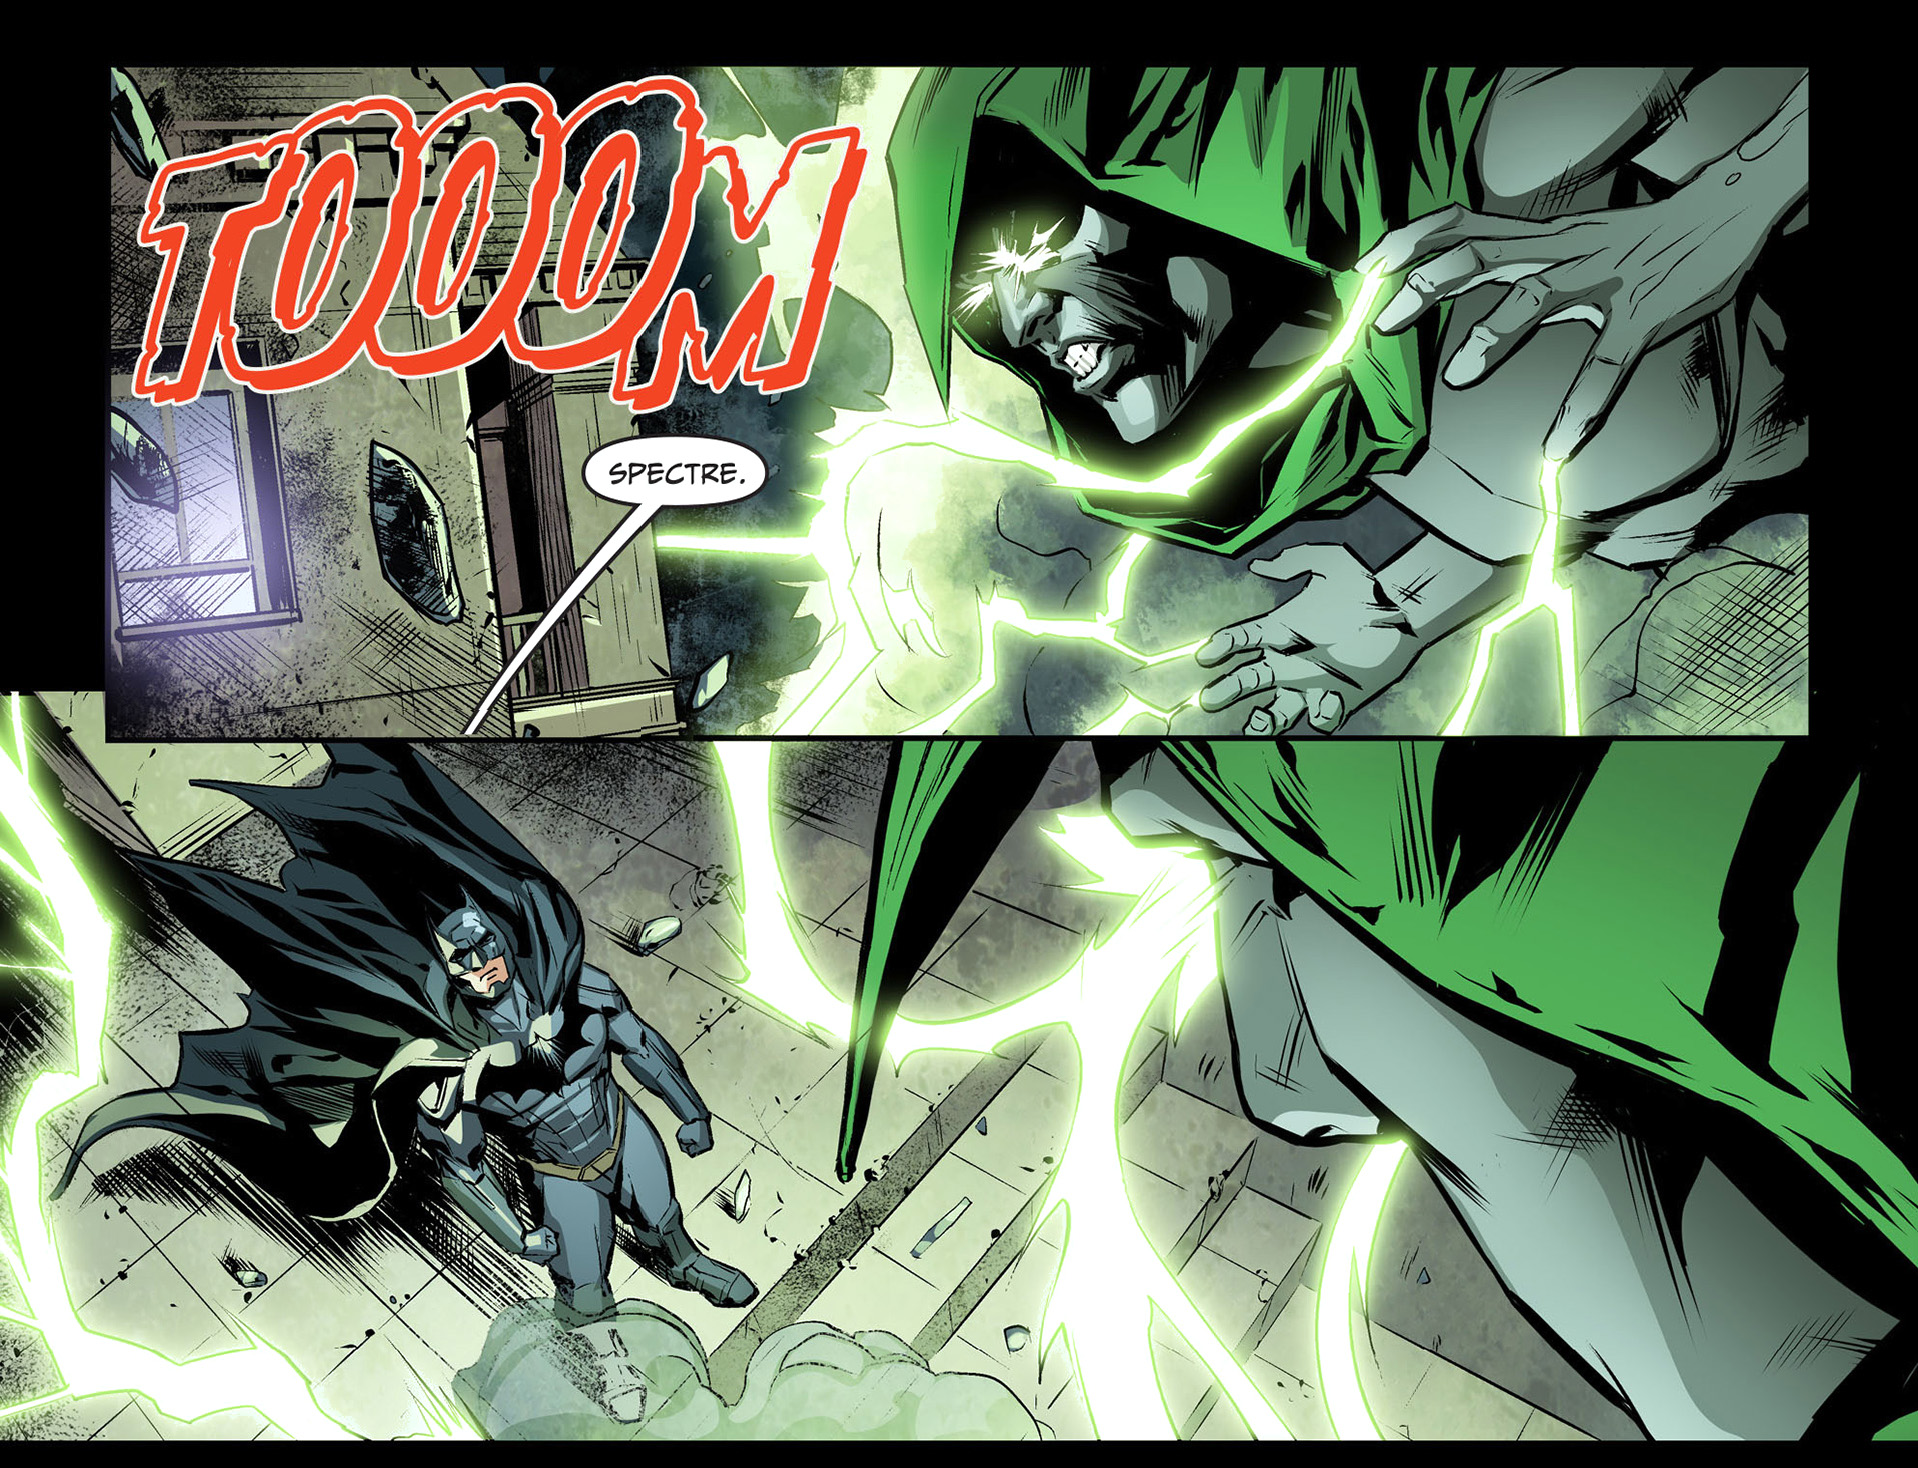 batman faces off with the spectre